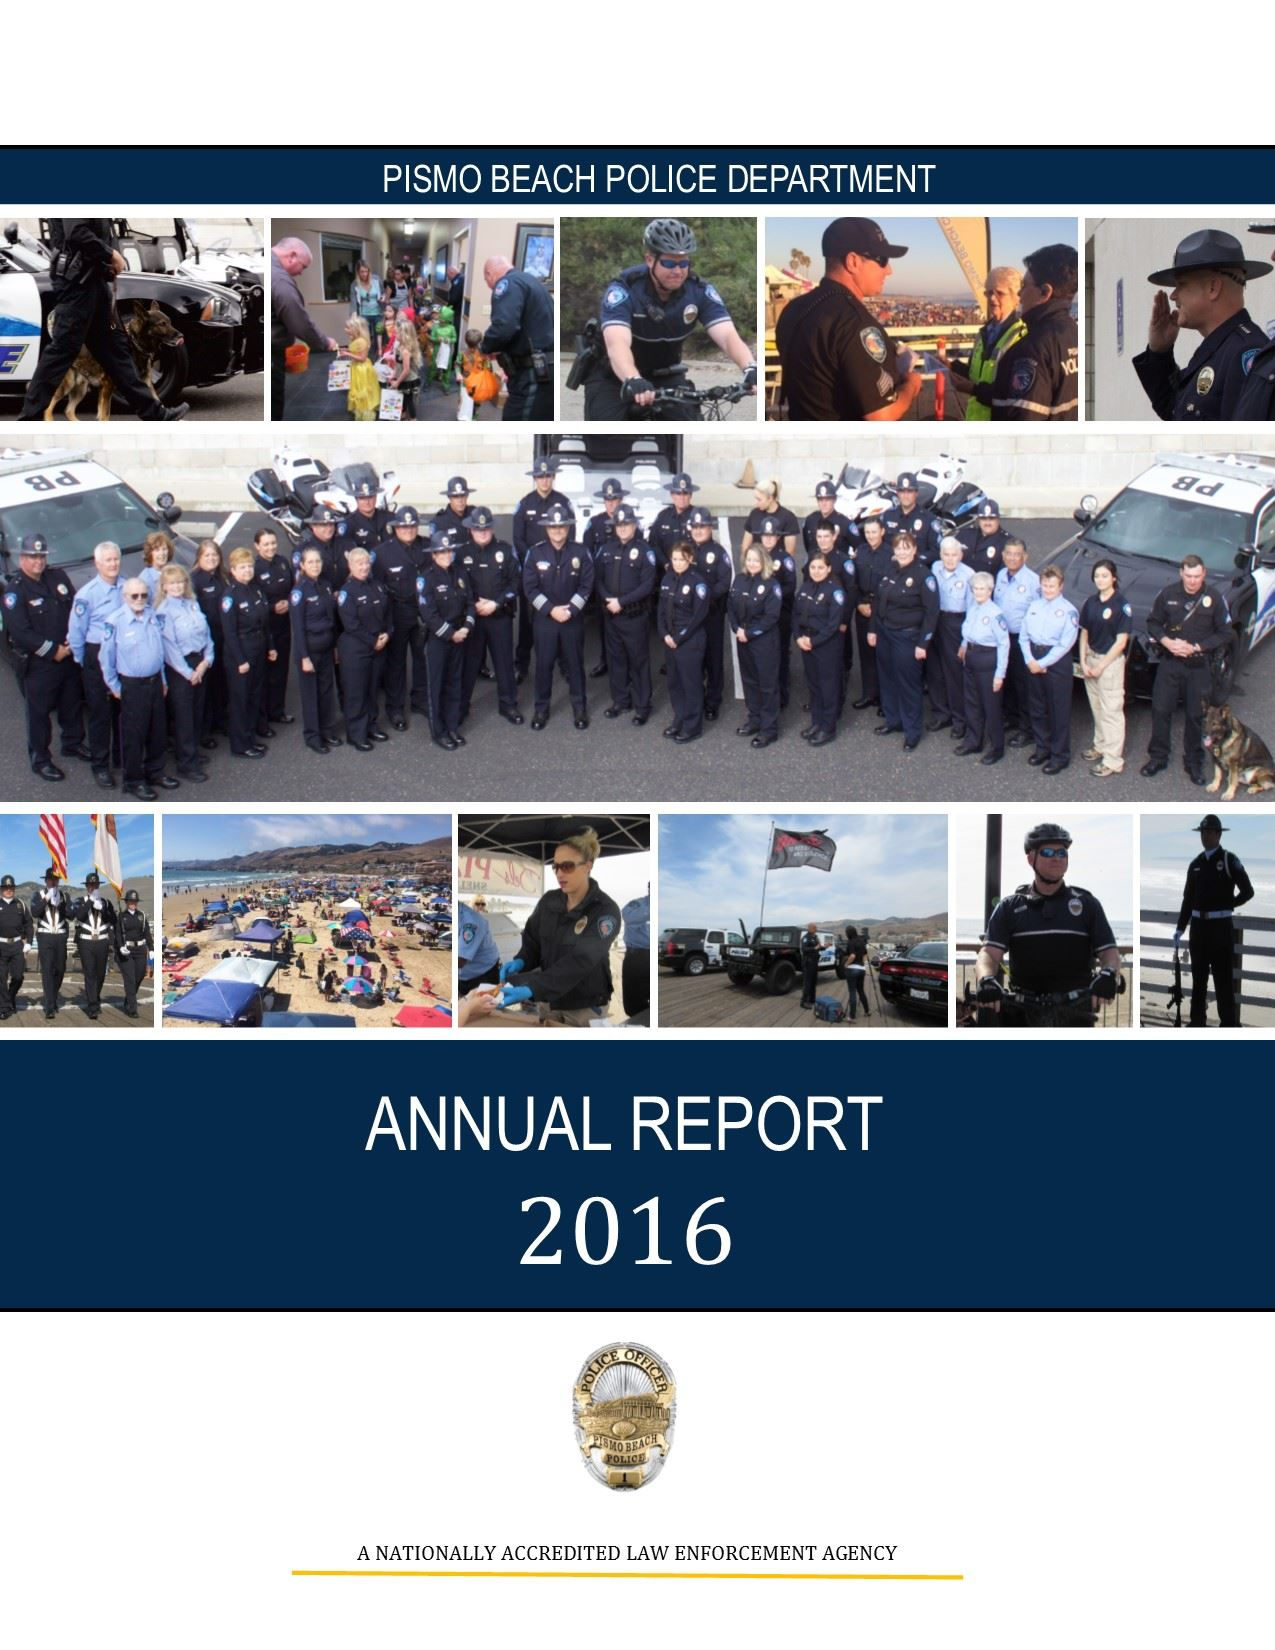 Annual Report Cover 2016